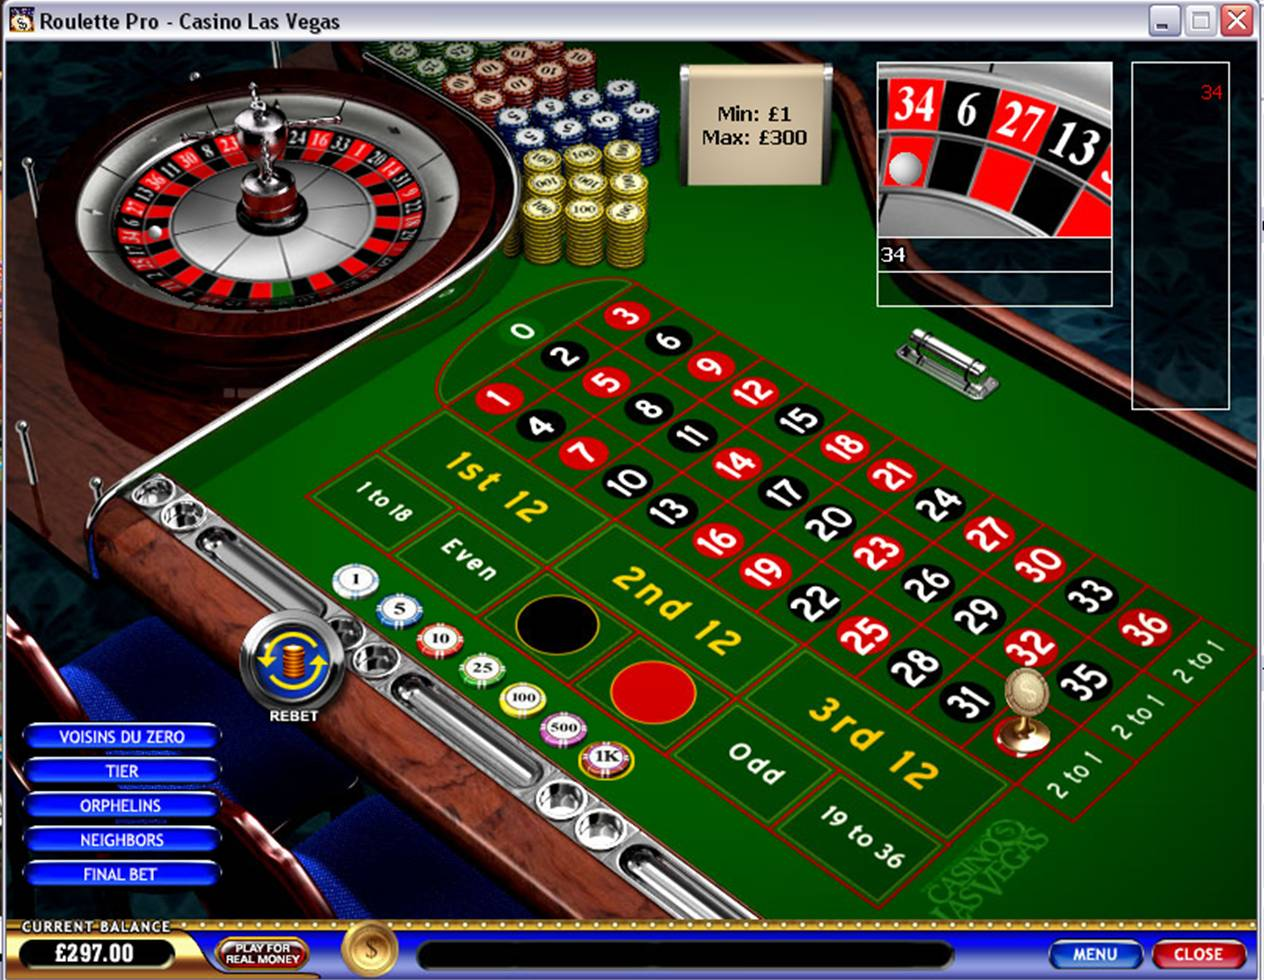 buy online casino sizlling hot